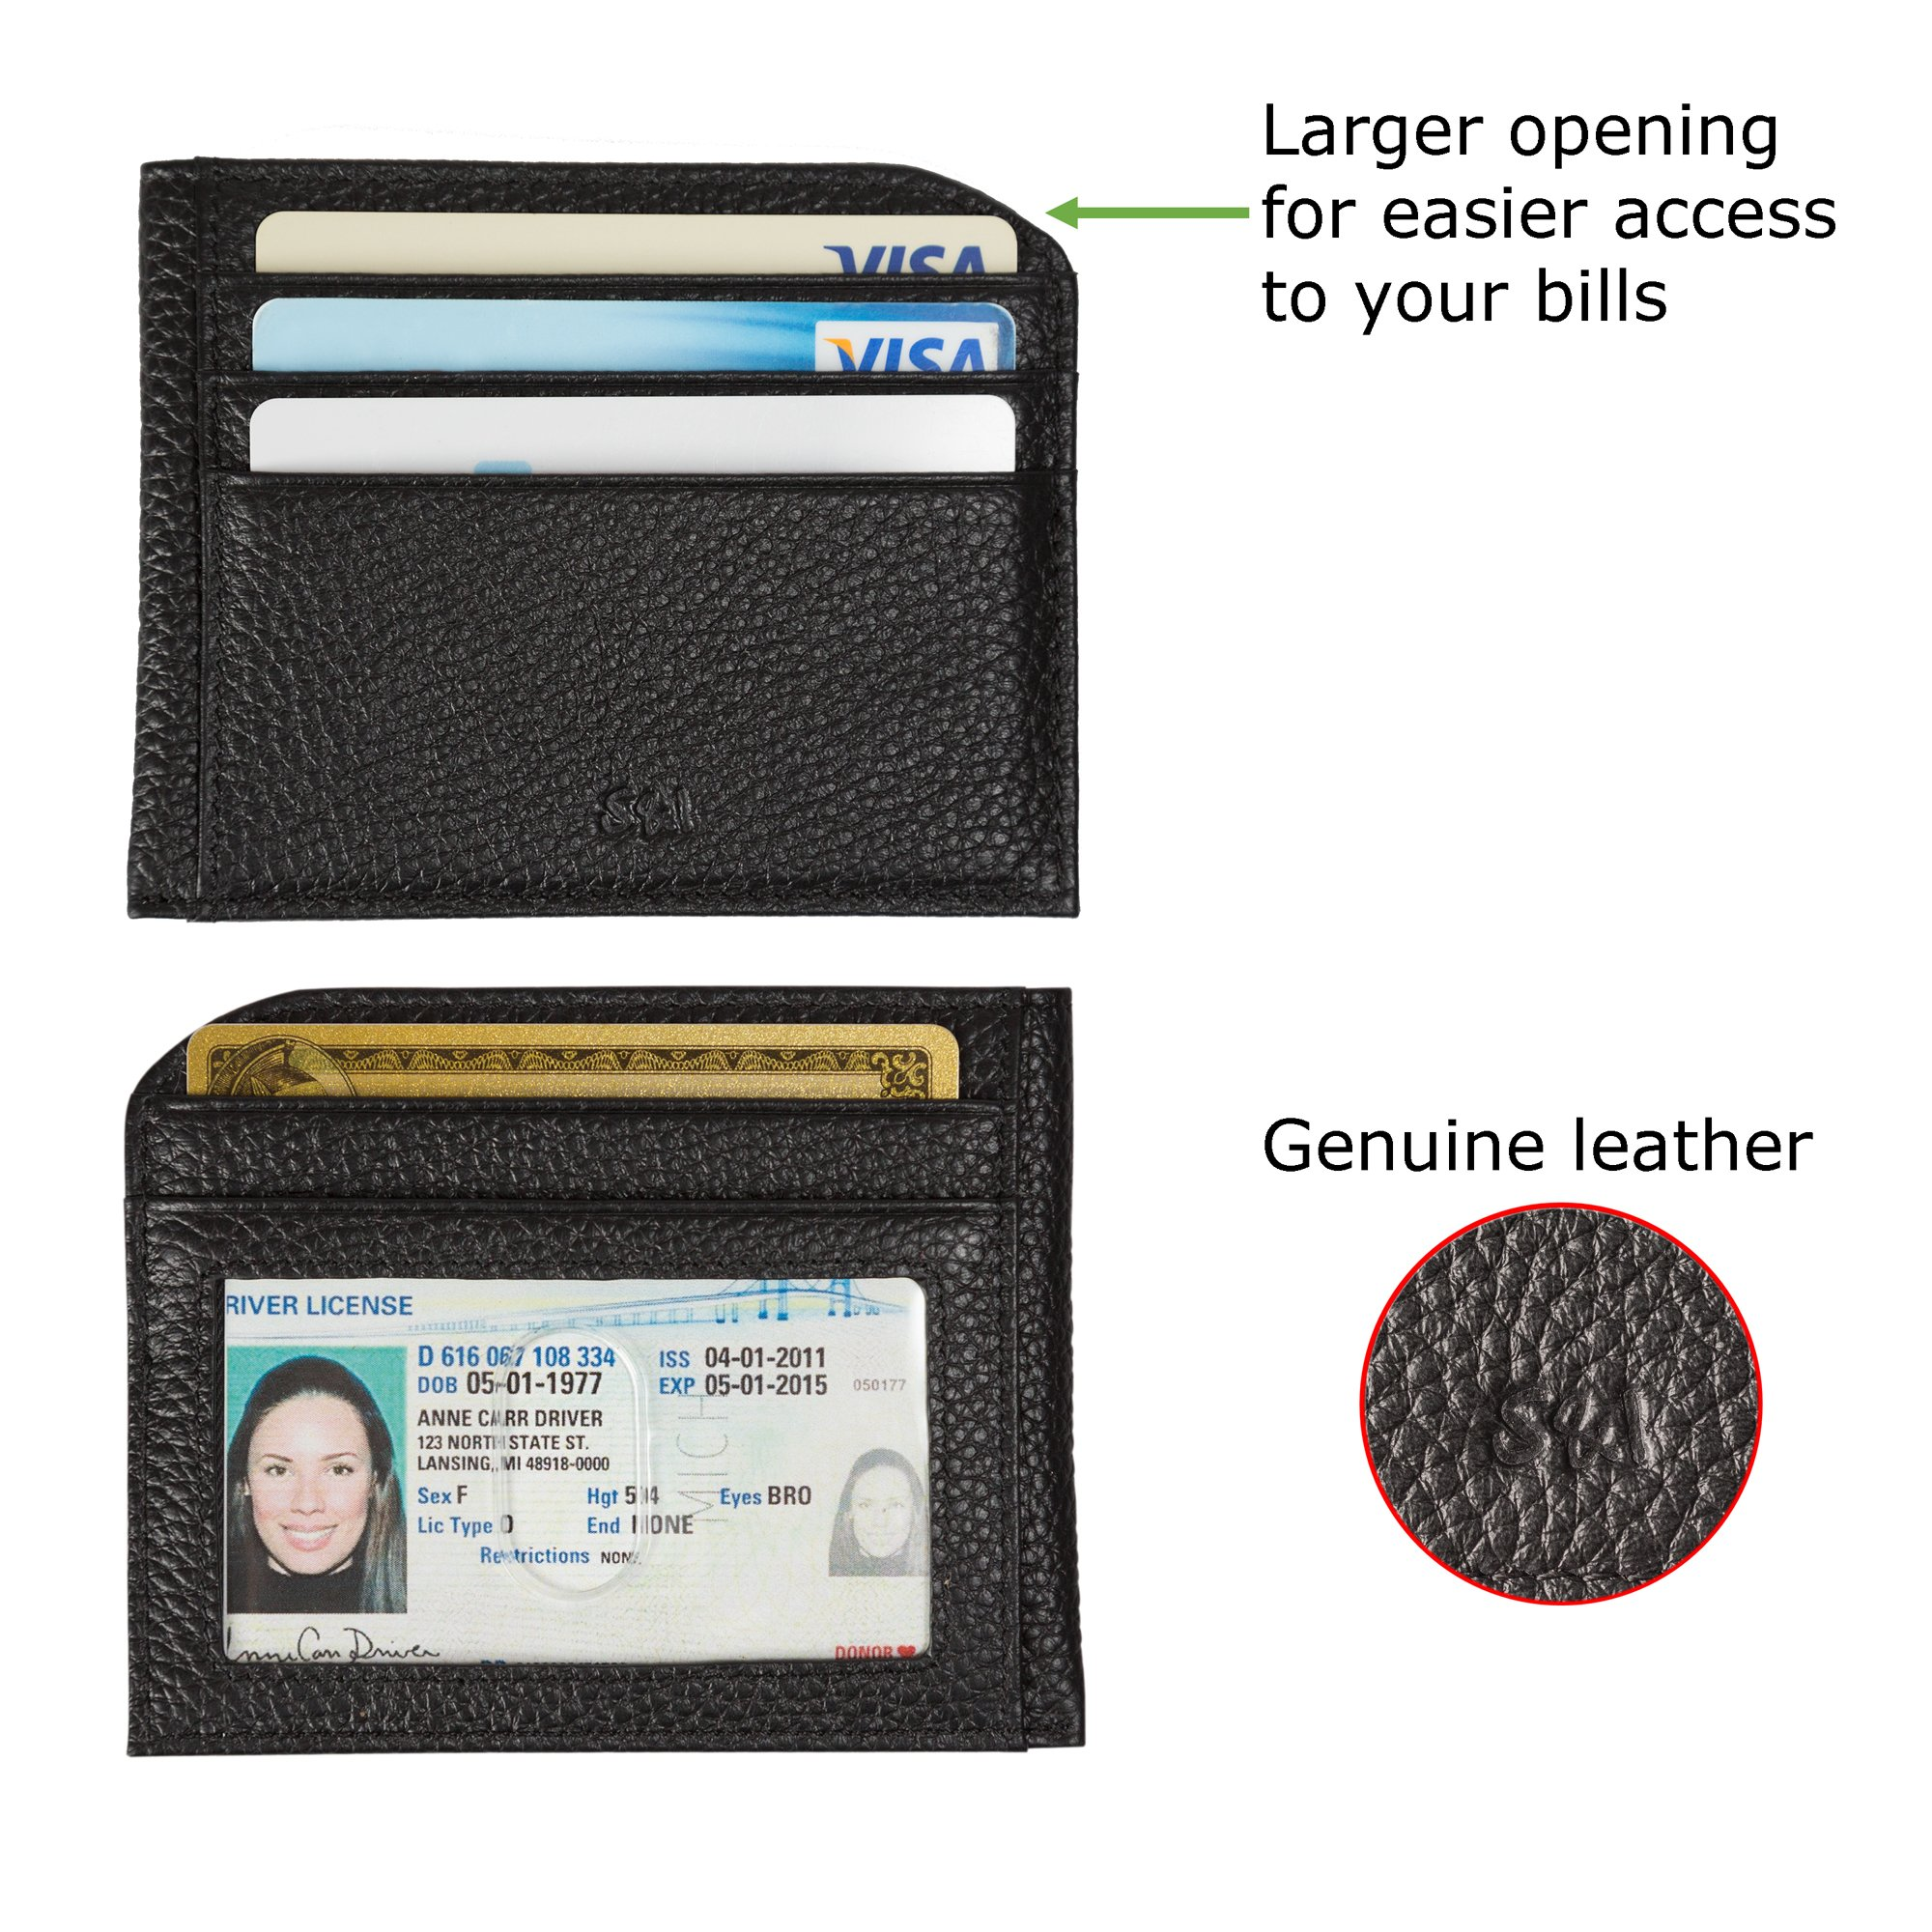 Slim Front Pocket Credit Card Wallet with ID Window and Key-Ring Set – Minimalist Genuine Leather RFID Blocking - by S&I Fine Goods,Black,Small by S&I Fine Goods (Image #2)